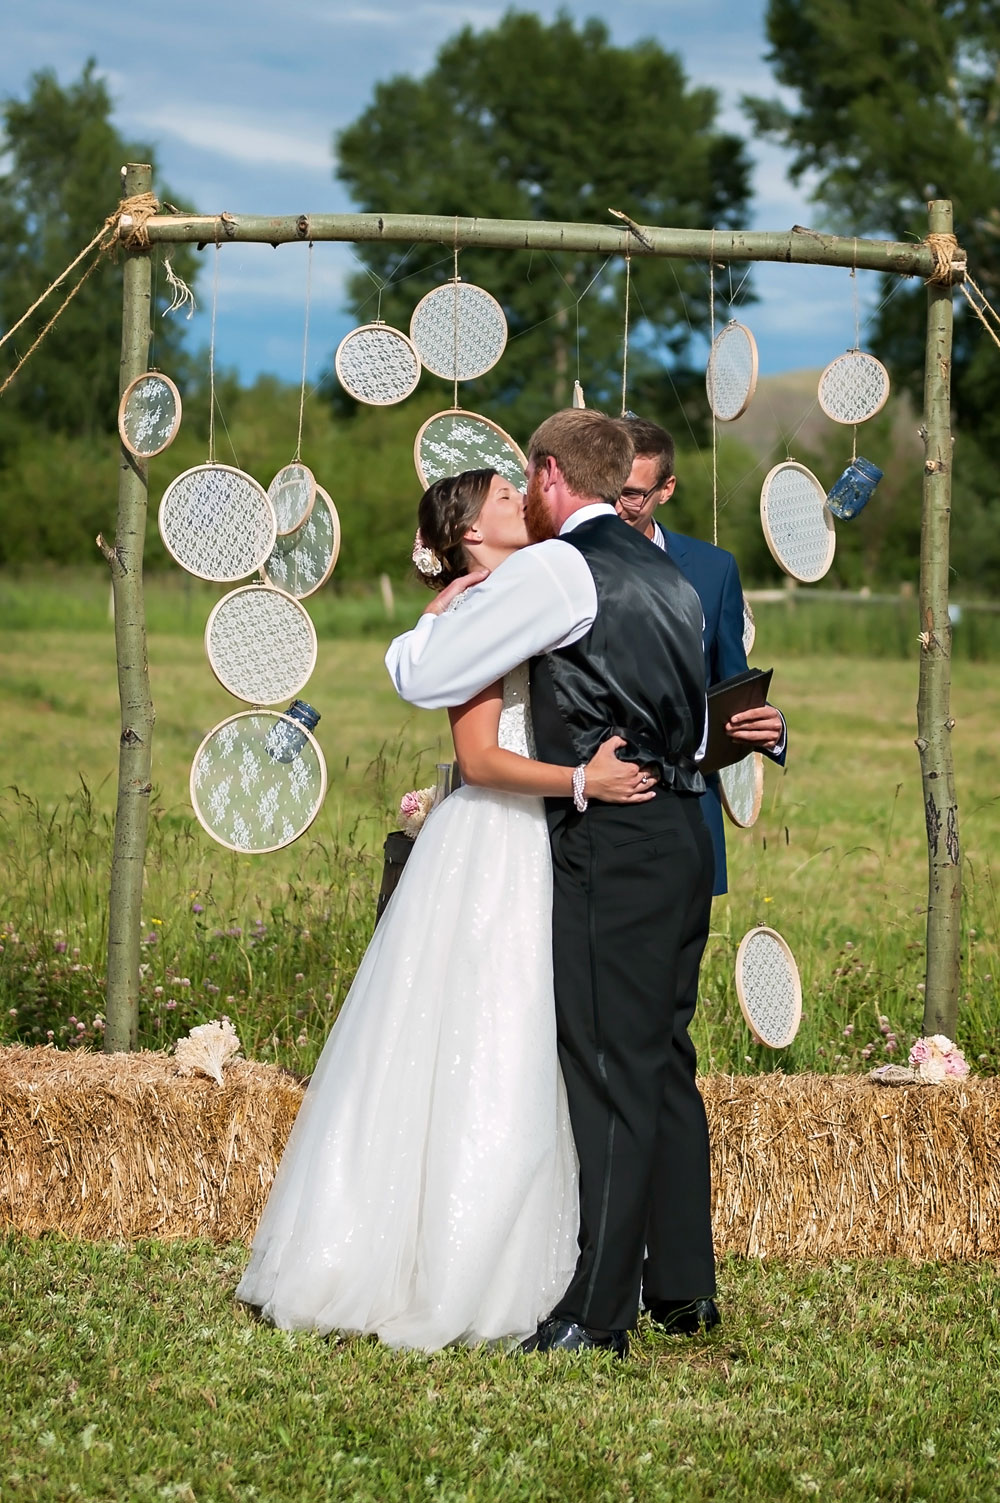 An Intimate Simple Ranch Wedding in Gunnison Colorado